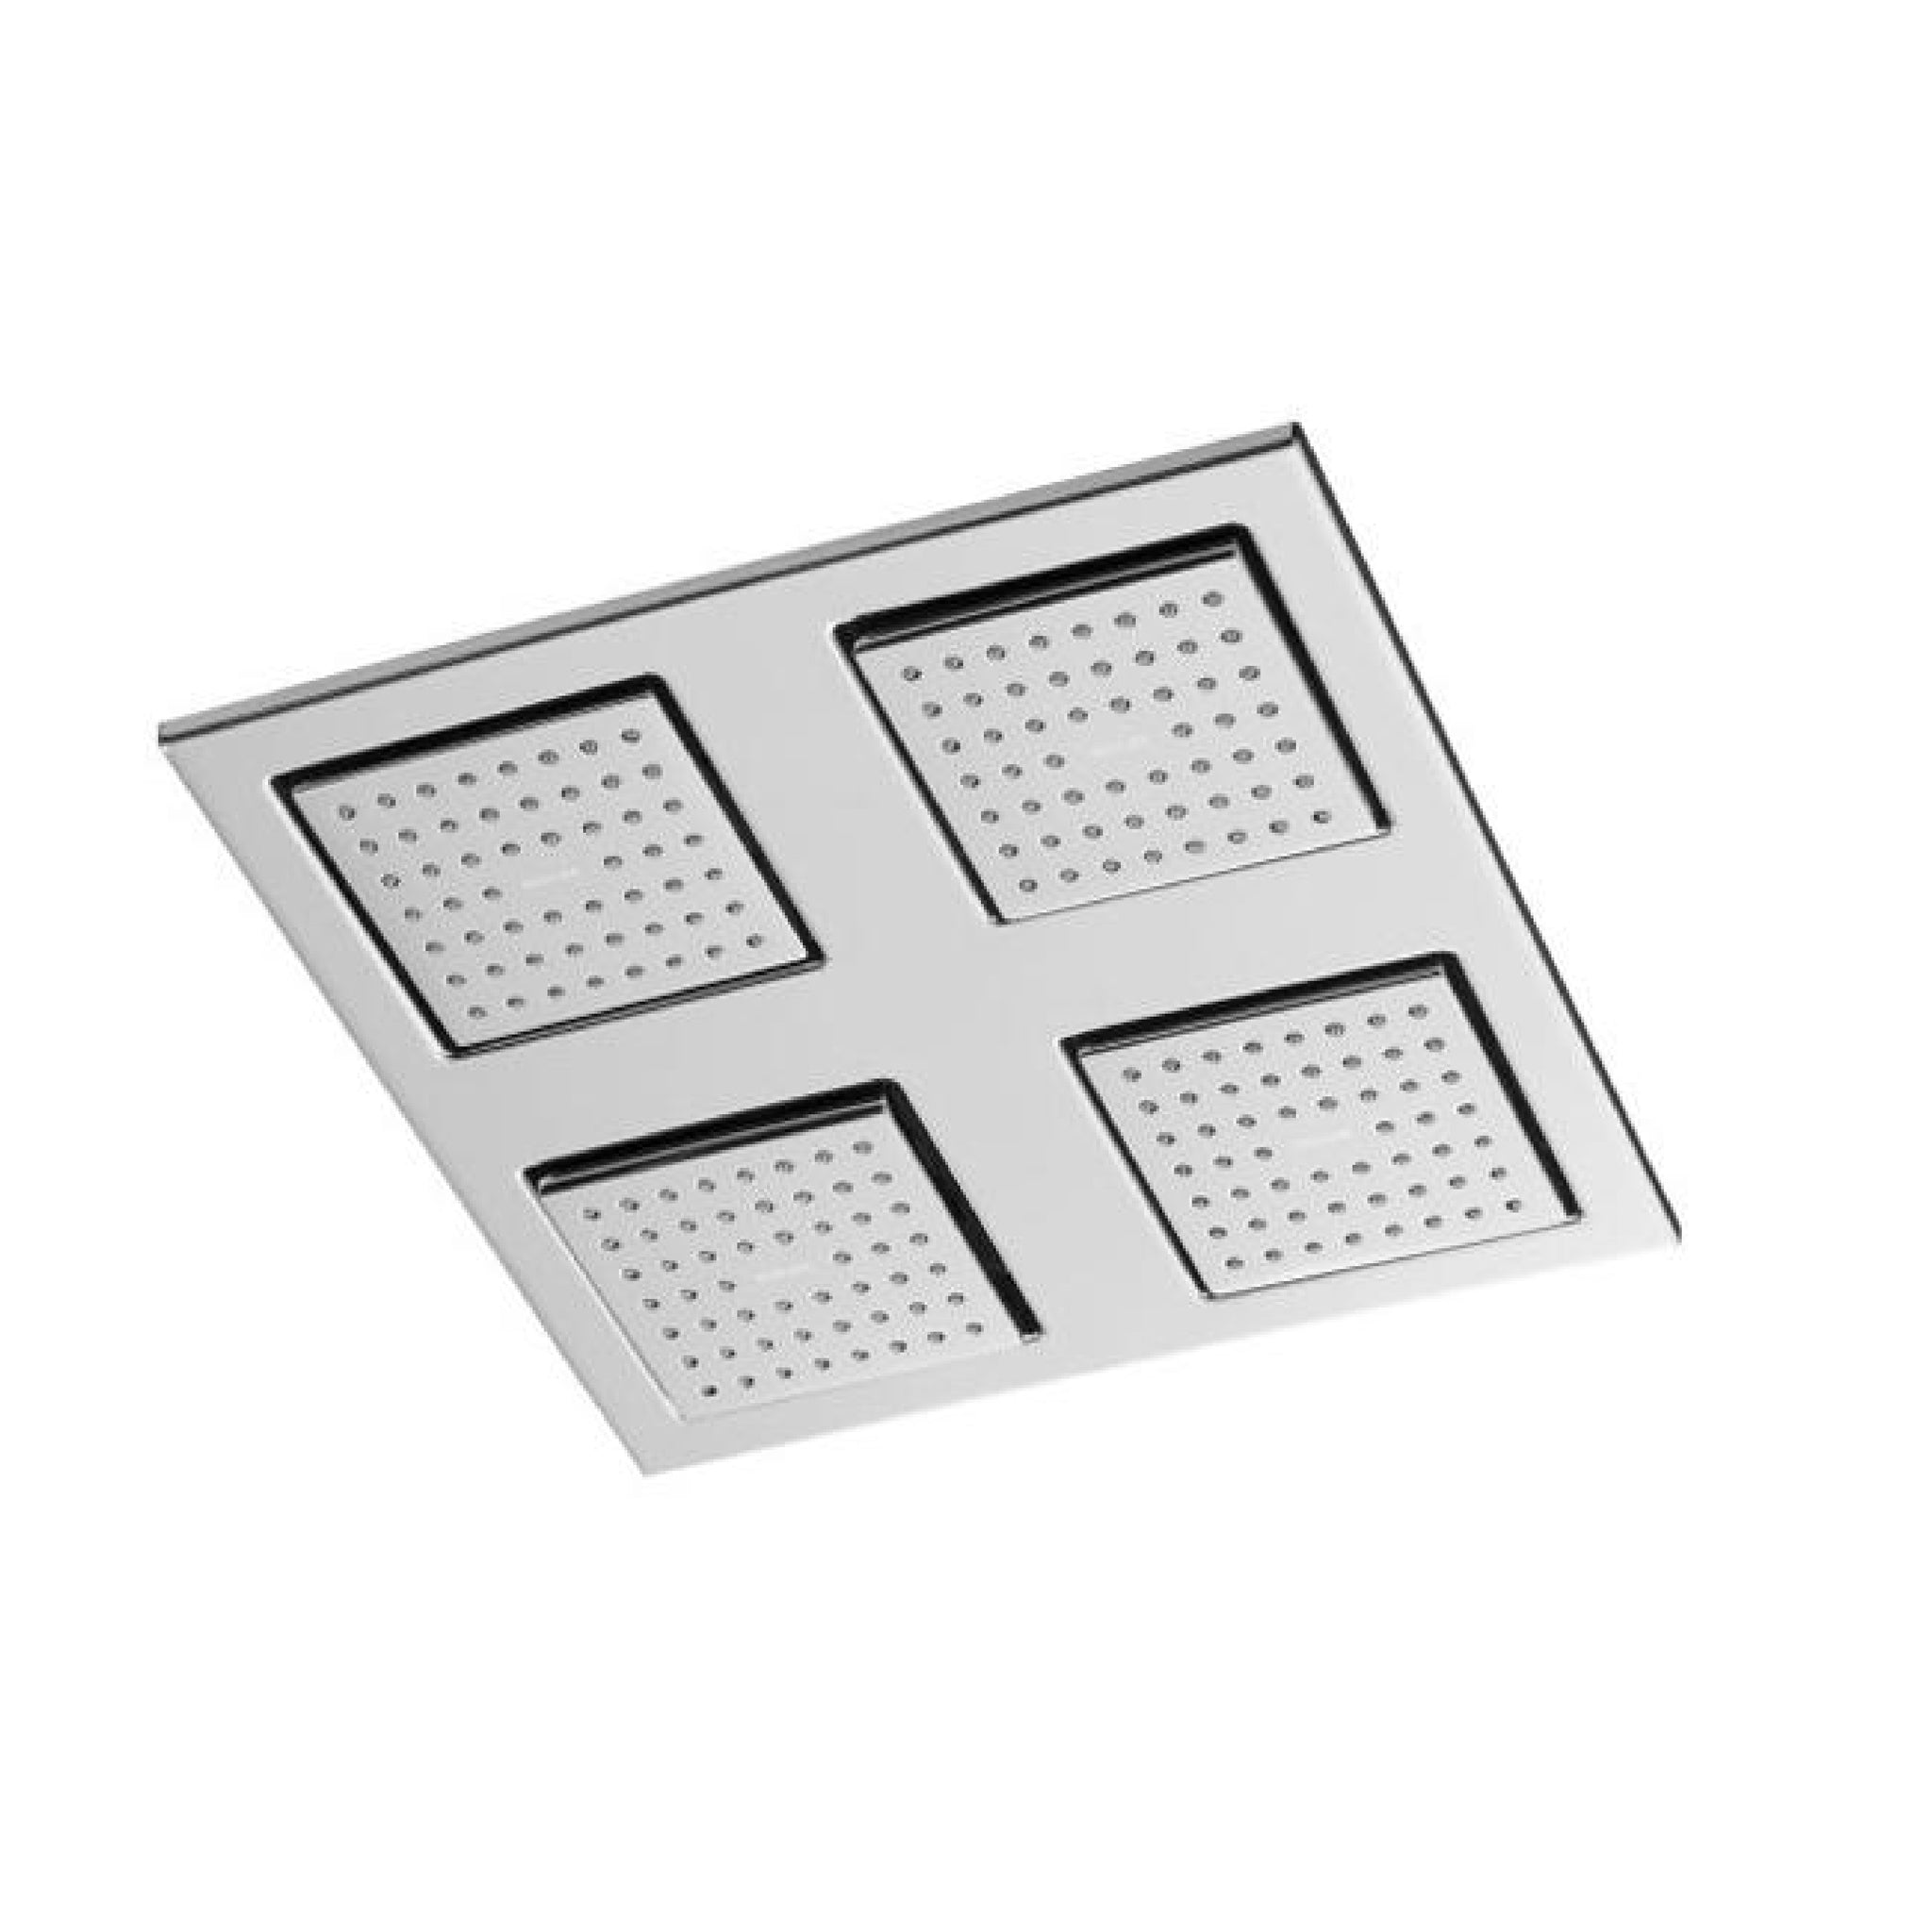 Shower accessory - Over head shower - Water tile - Rain over head square with 54-nozzle shower panel with soothing spray - Polished chrome